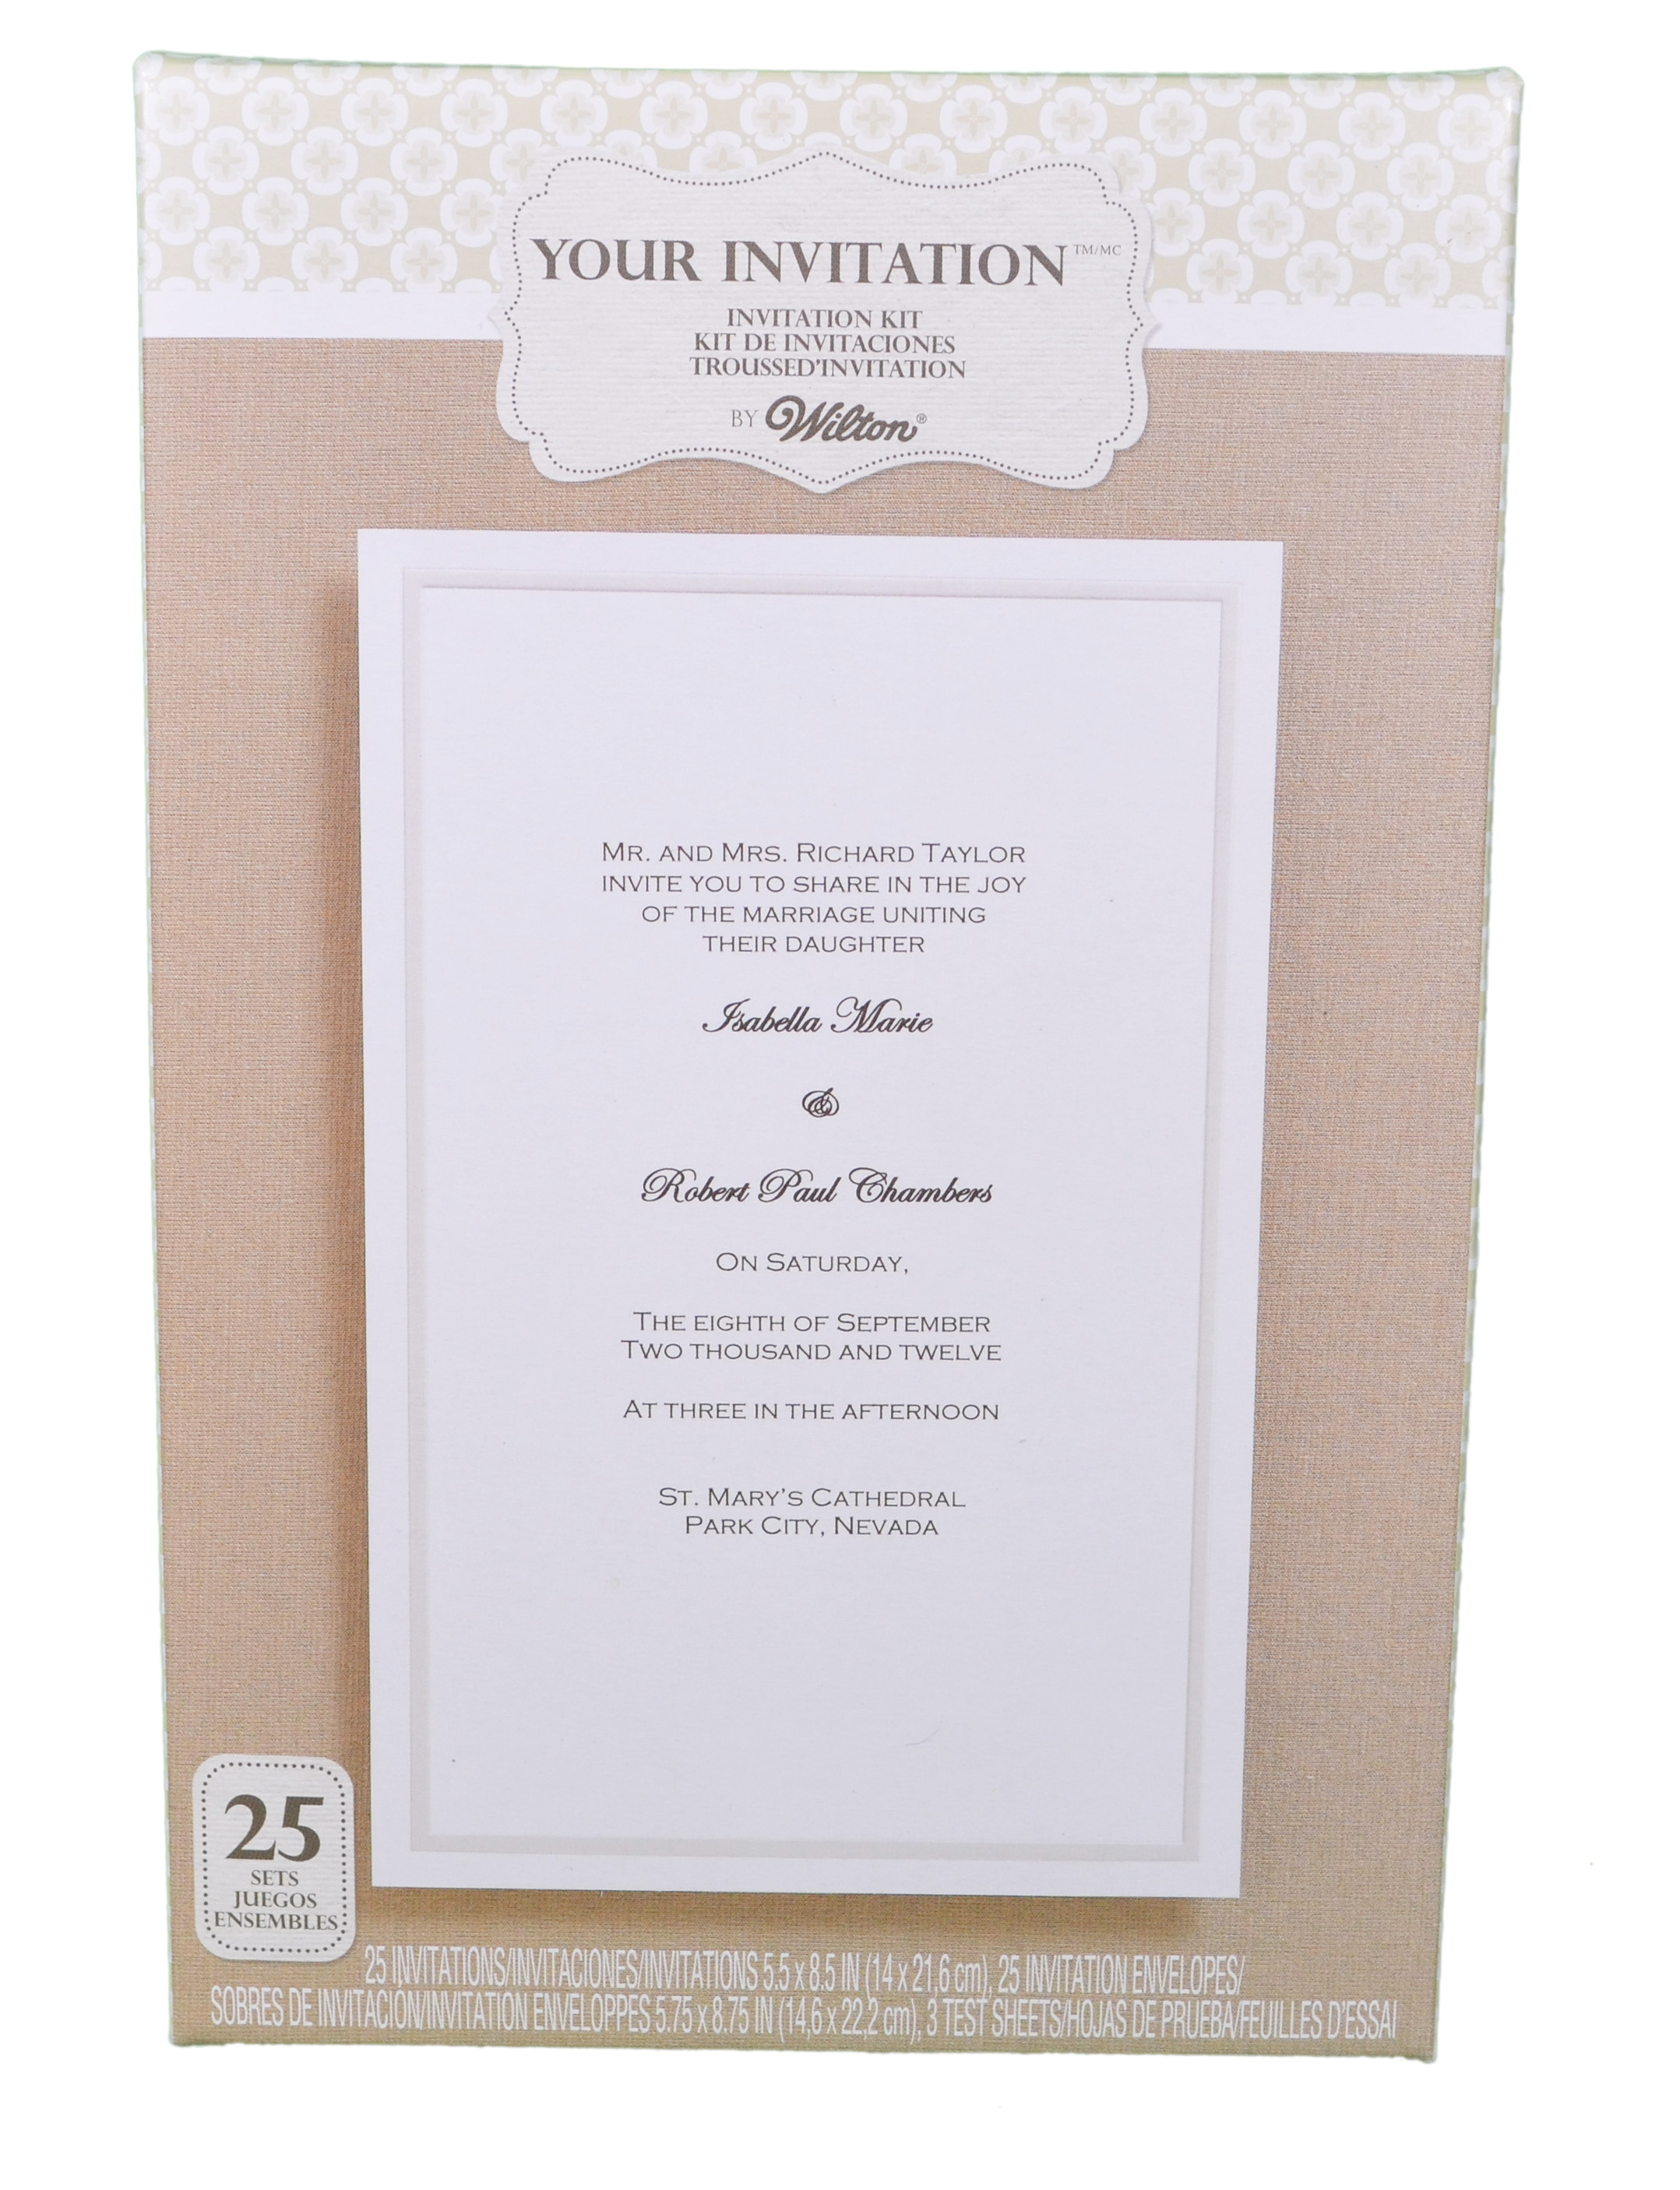 Wilton Wedding Invitation Kits was very inspiring ideas you may choose for invitation ideas